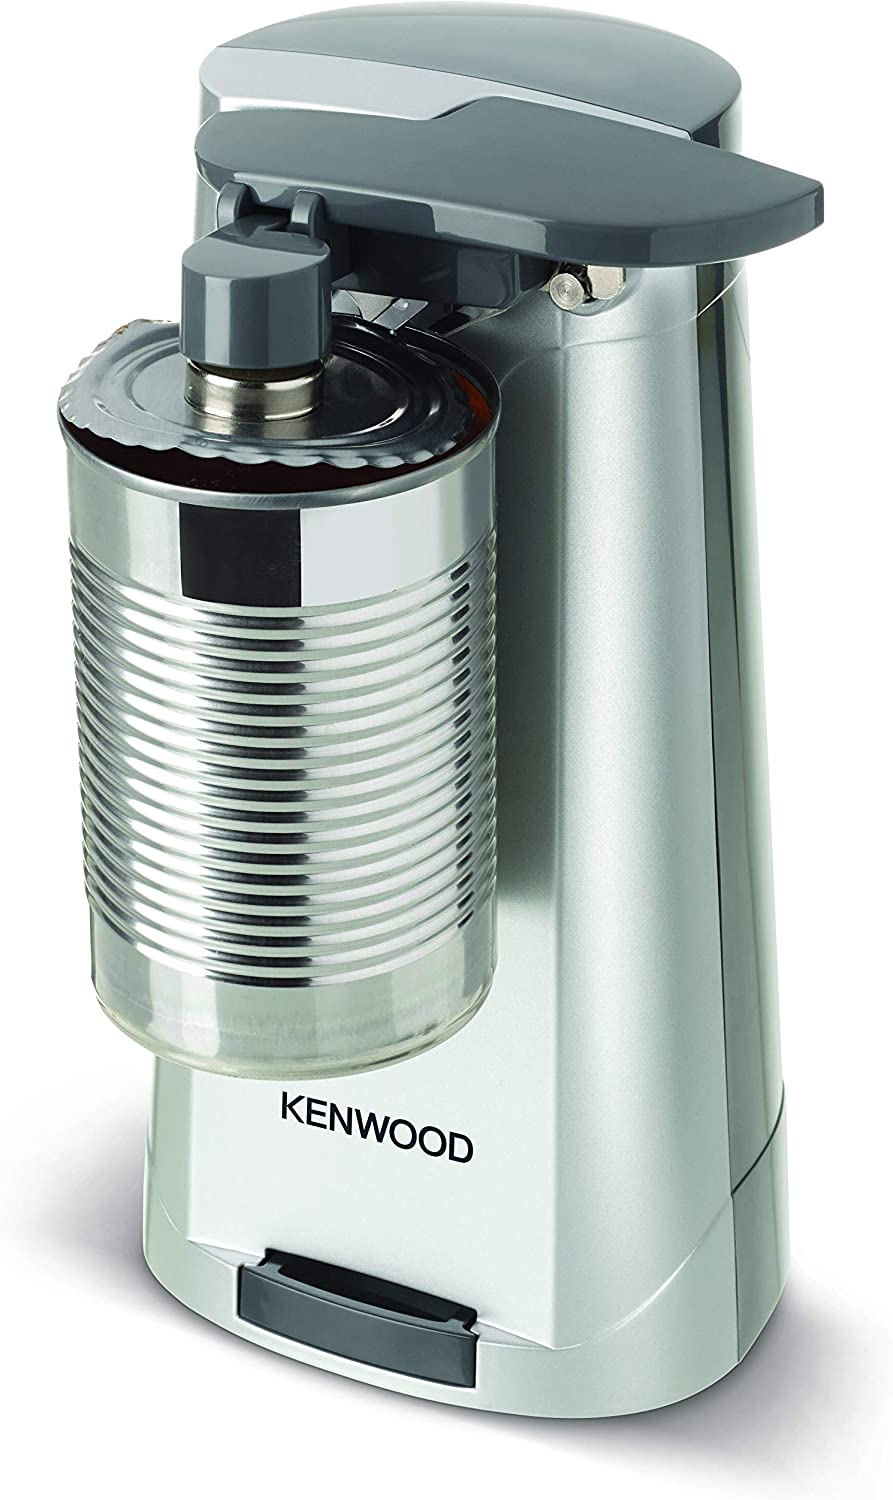 Kenwood CAP70.A0SI 3-in-1 Can Opener Sharpener All Topics on TV stores are sold Knife O Bottle